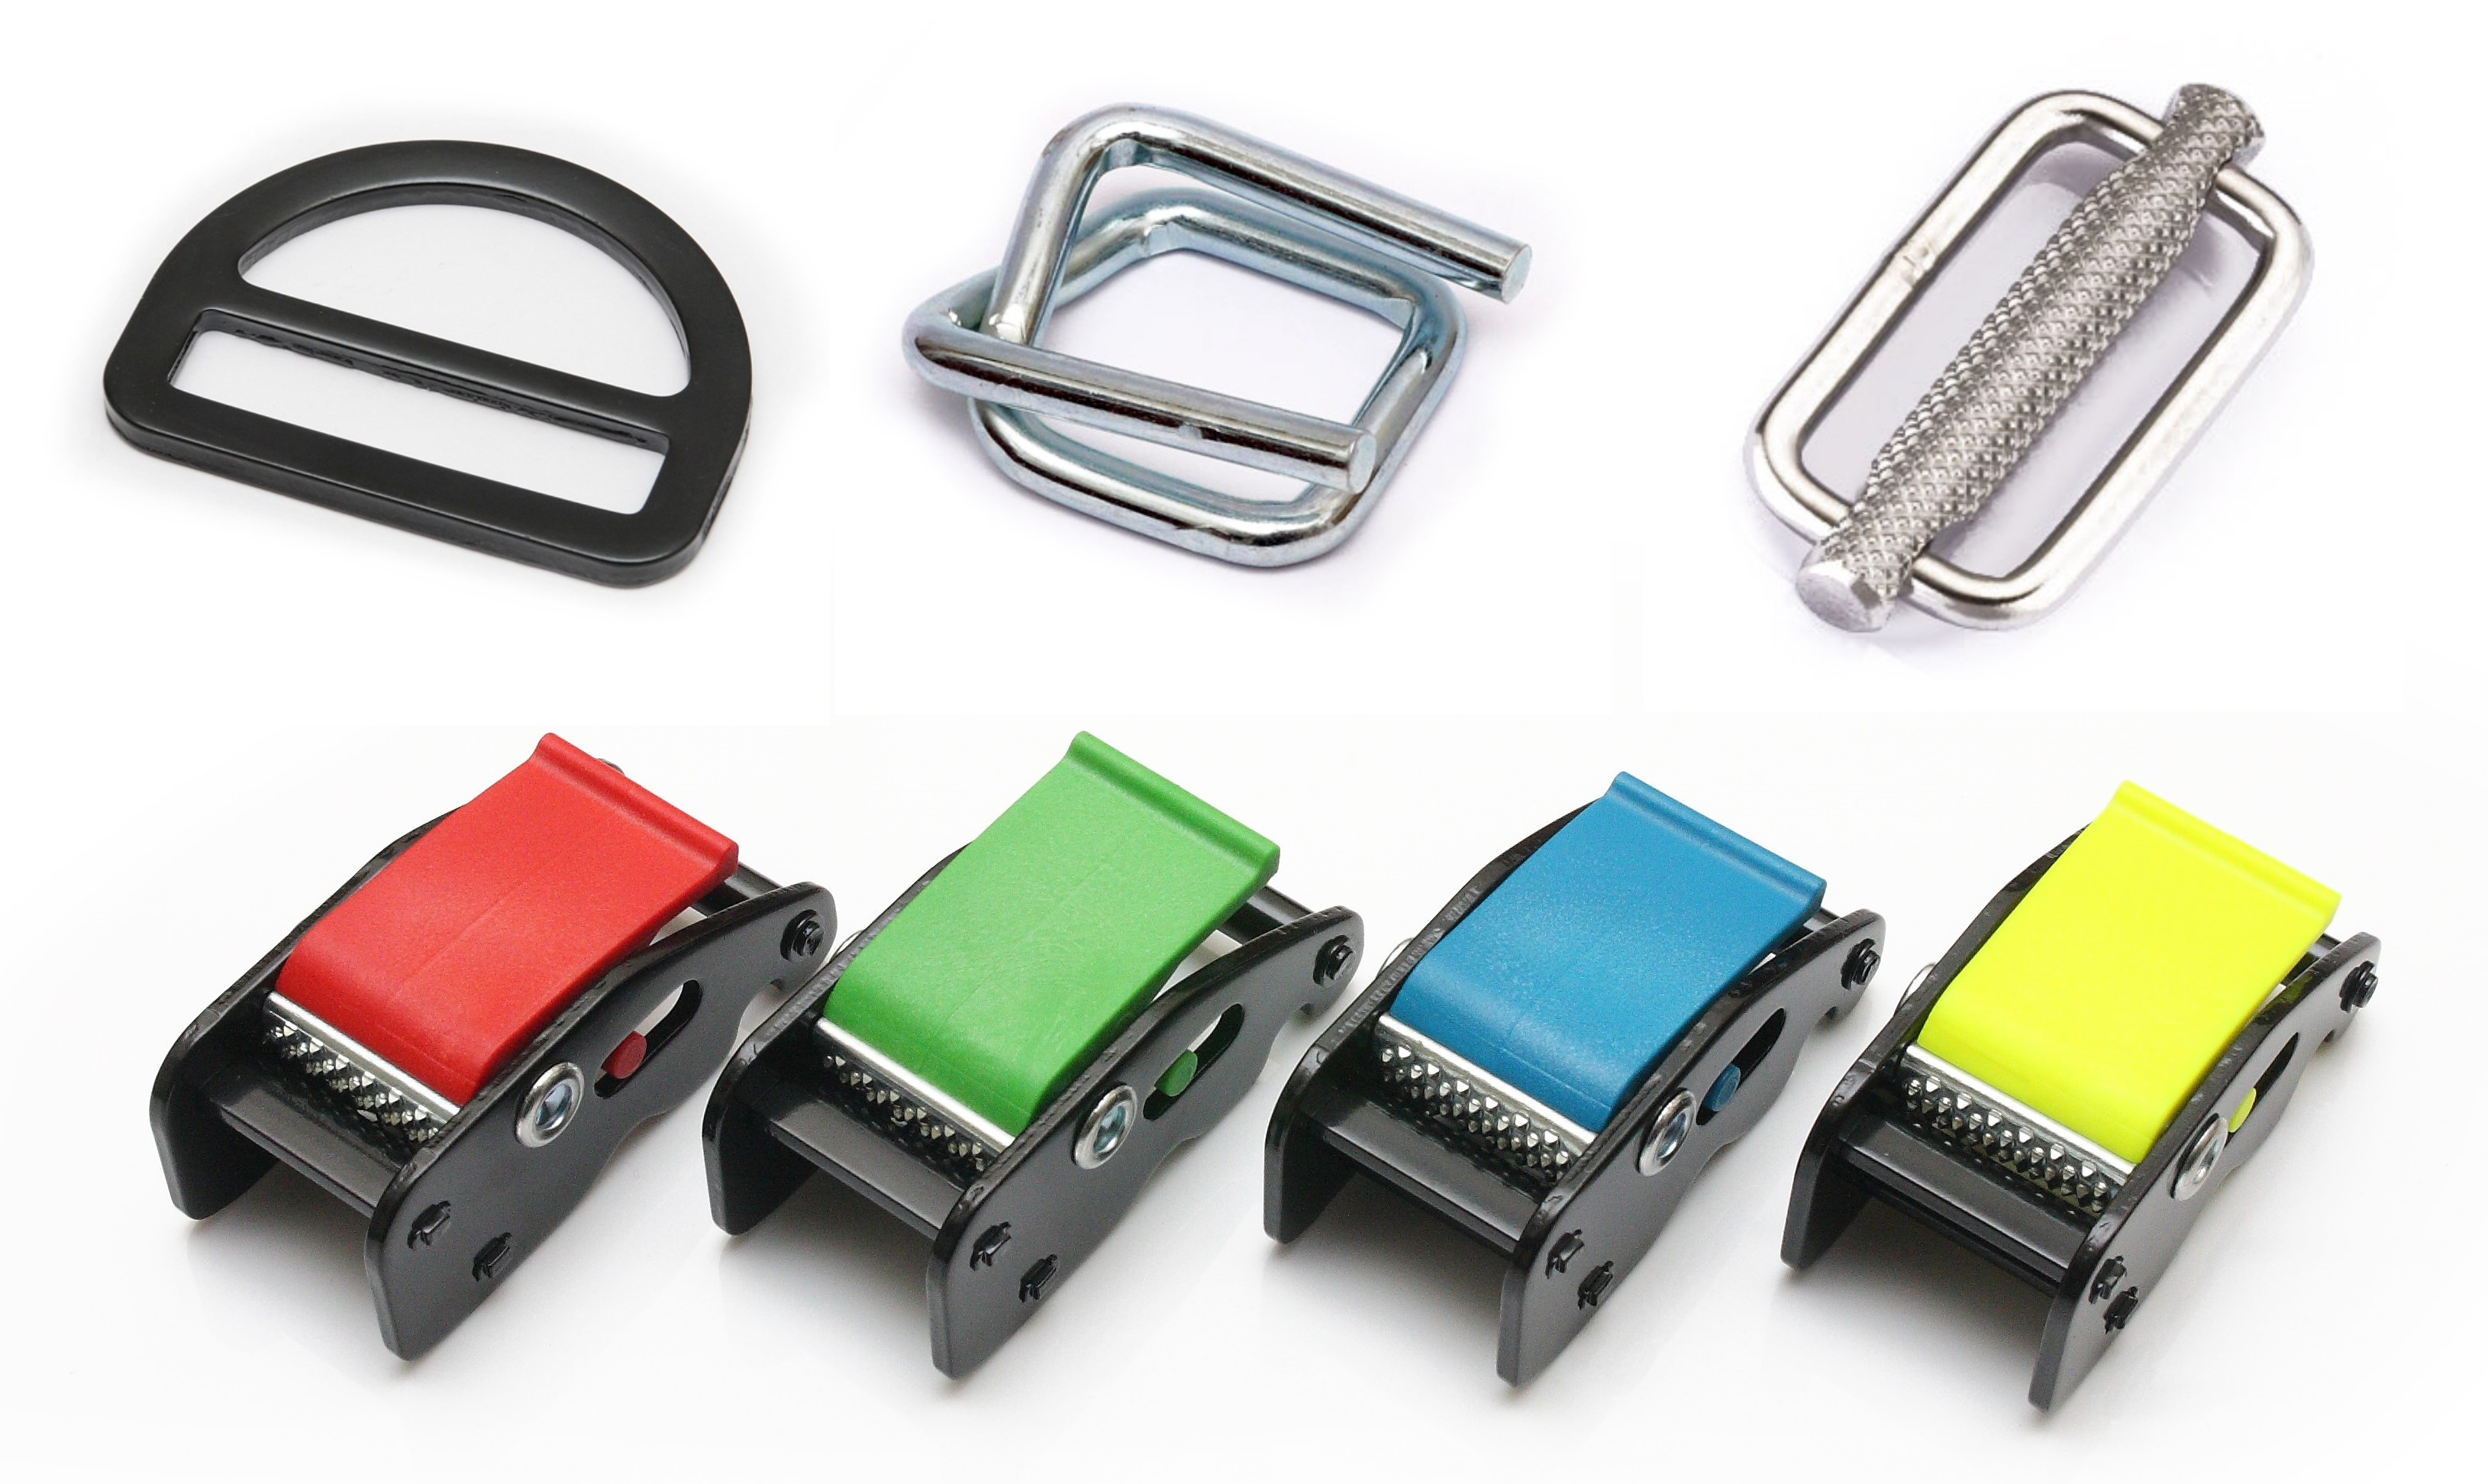 Agricultural / Tractor Buckle for Auto Exterior Accessories made by Win Chance Metal Co., LTD. 鈞成金屬股份有限公司 - MatchSupplier.com